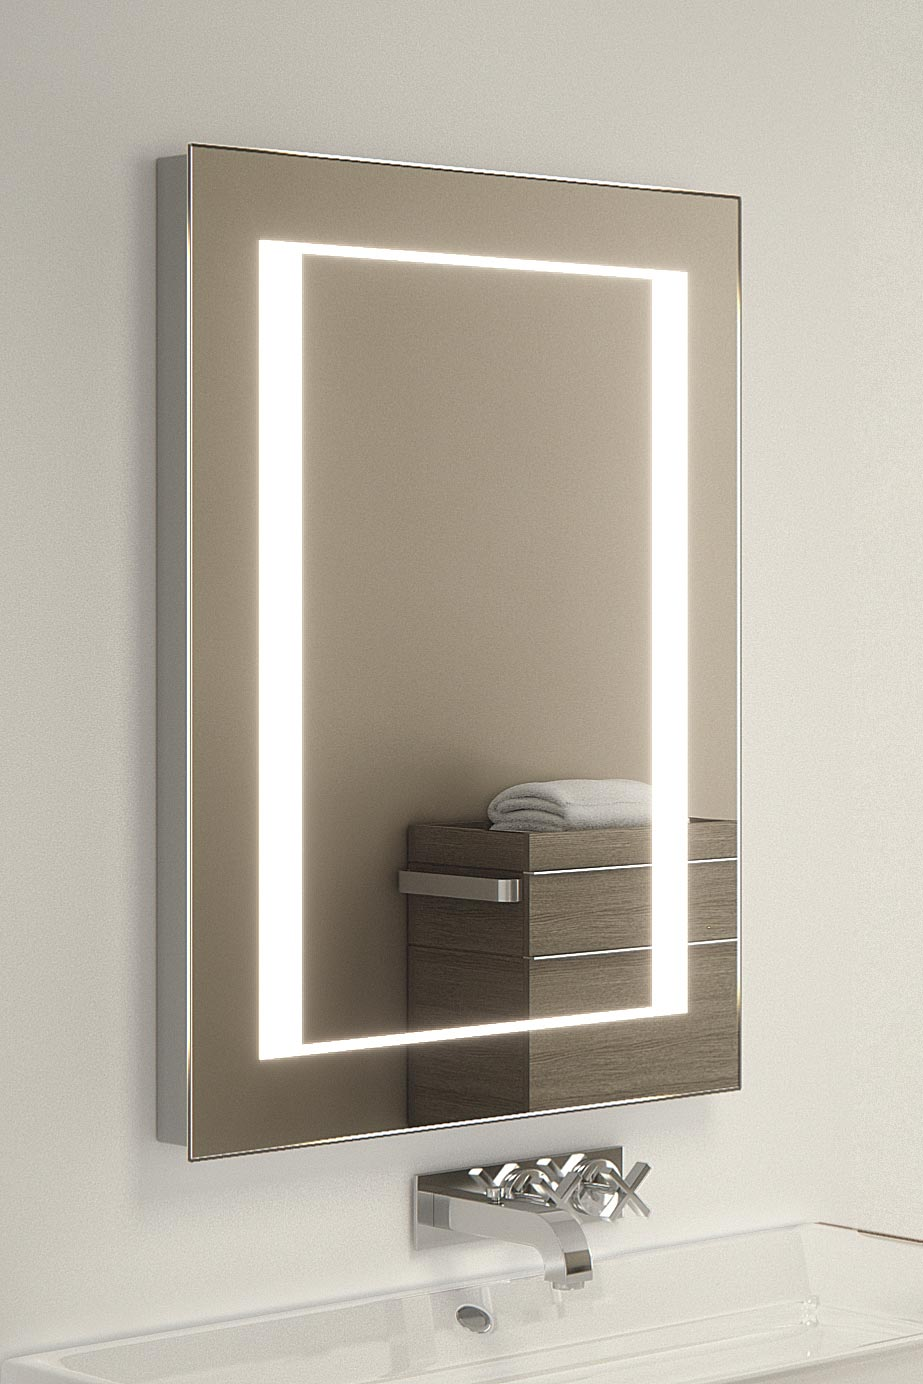 Kalki Shaver Led Bathroom Illuminated Mirror With Demister